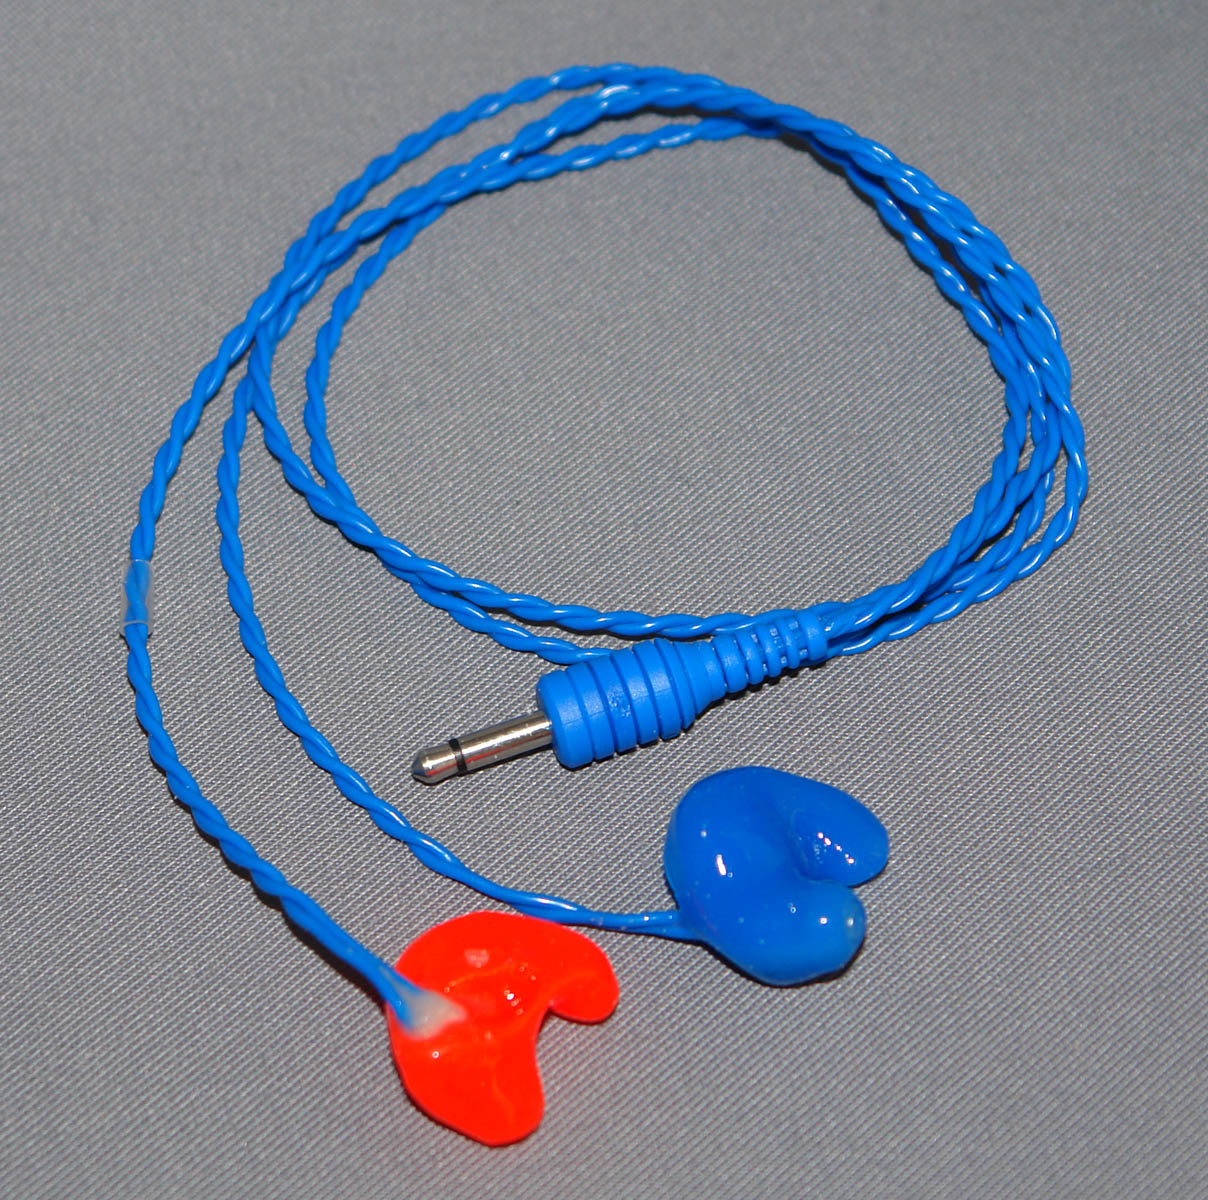 Ear phones with premolded tips